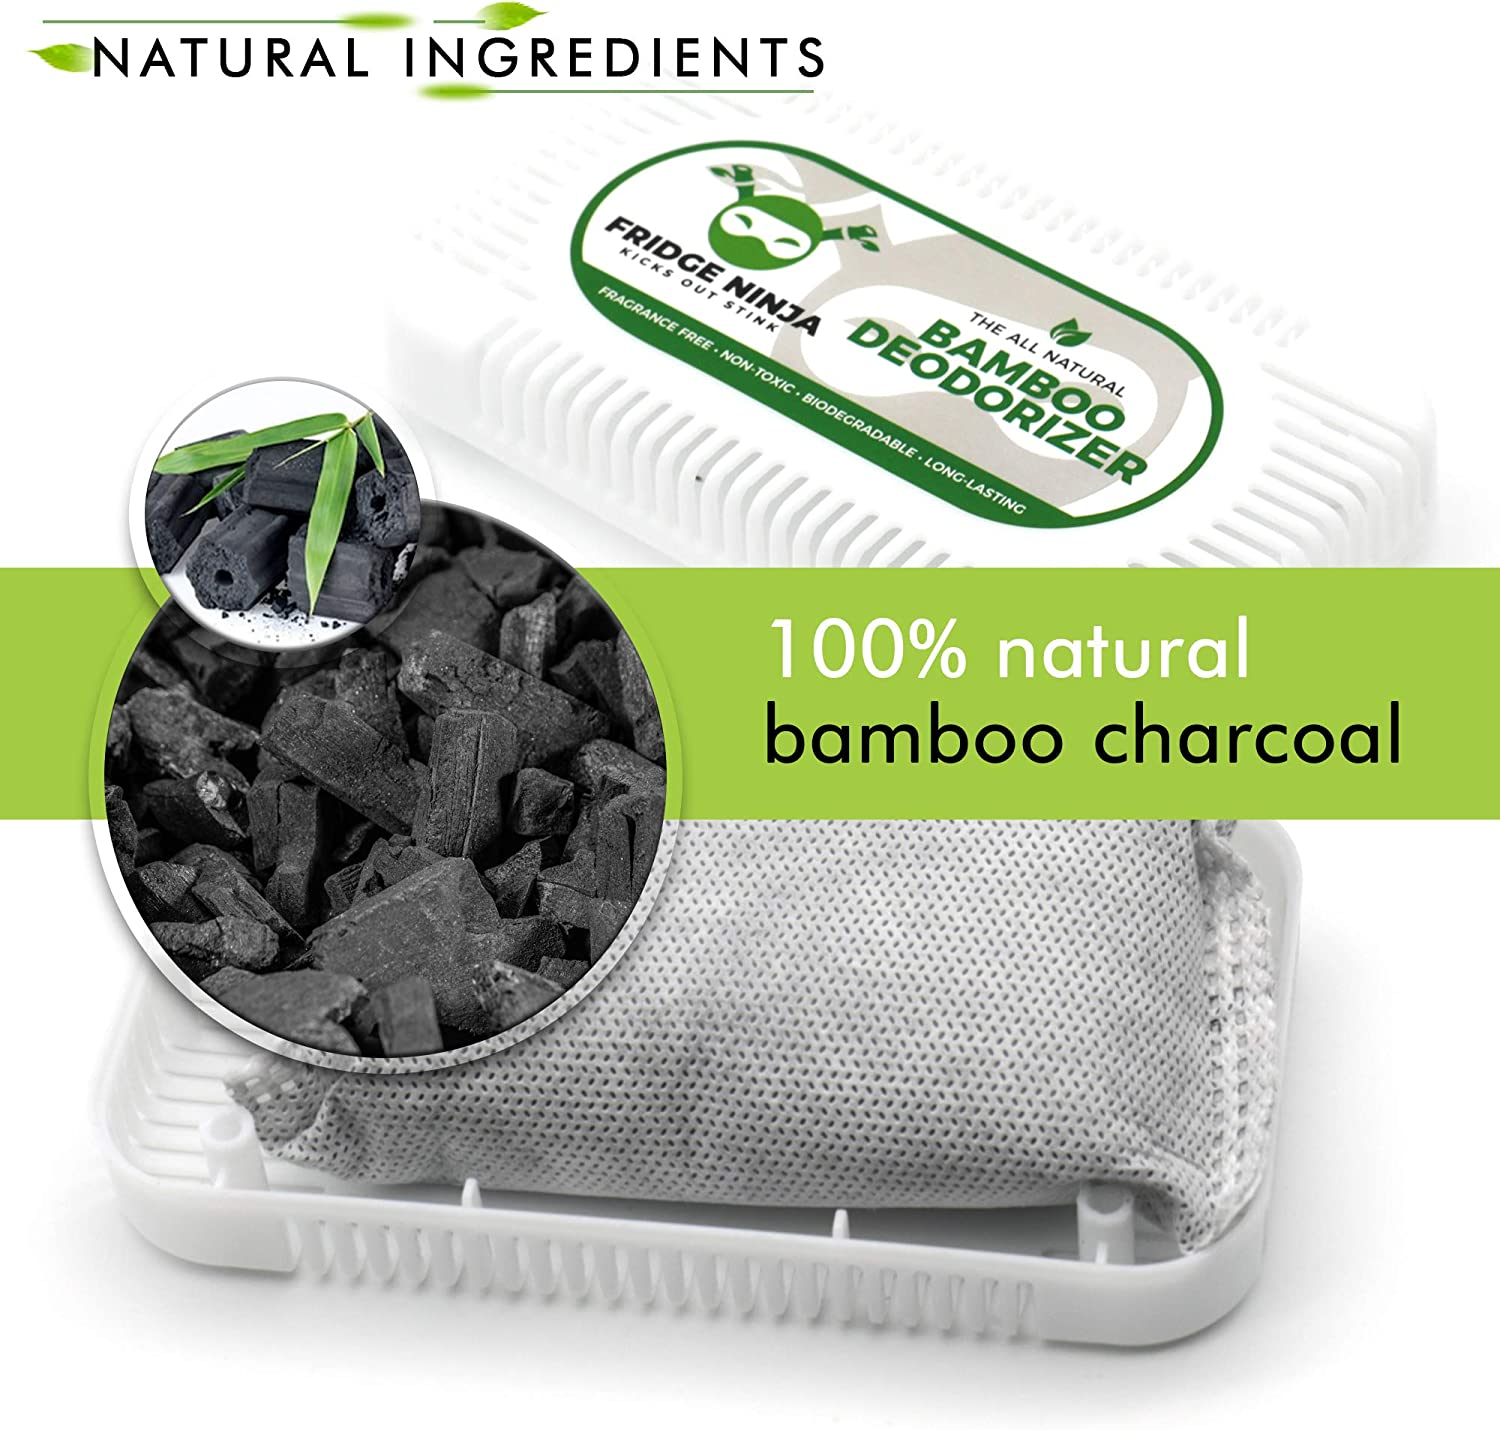 Refrigerator Deodorizer - Natural Bamboo Activated Charcoal Fridge Deodorizer - More Effective Than Baking Soda - Refrigerator Odor Eliminator for Fridges, Freezers, Coolers & Lunch Boxes - 2 Pack: Kitchen & Dining